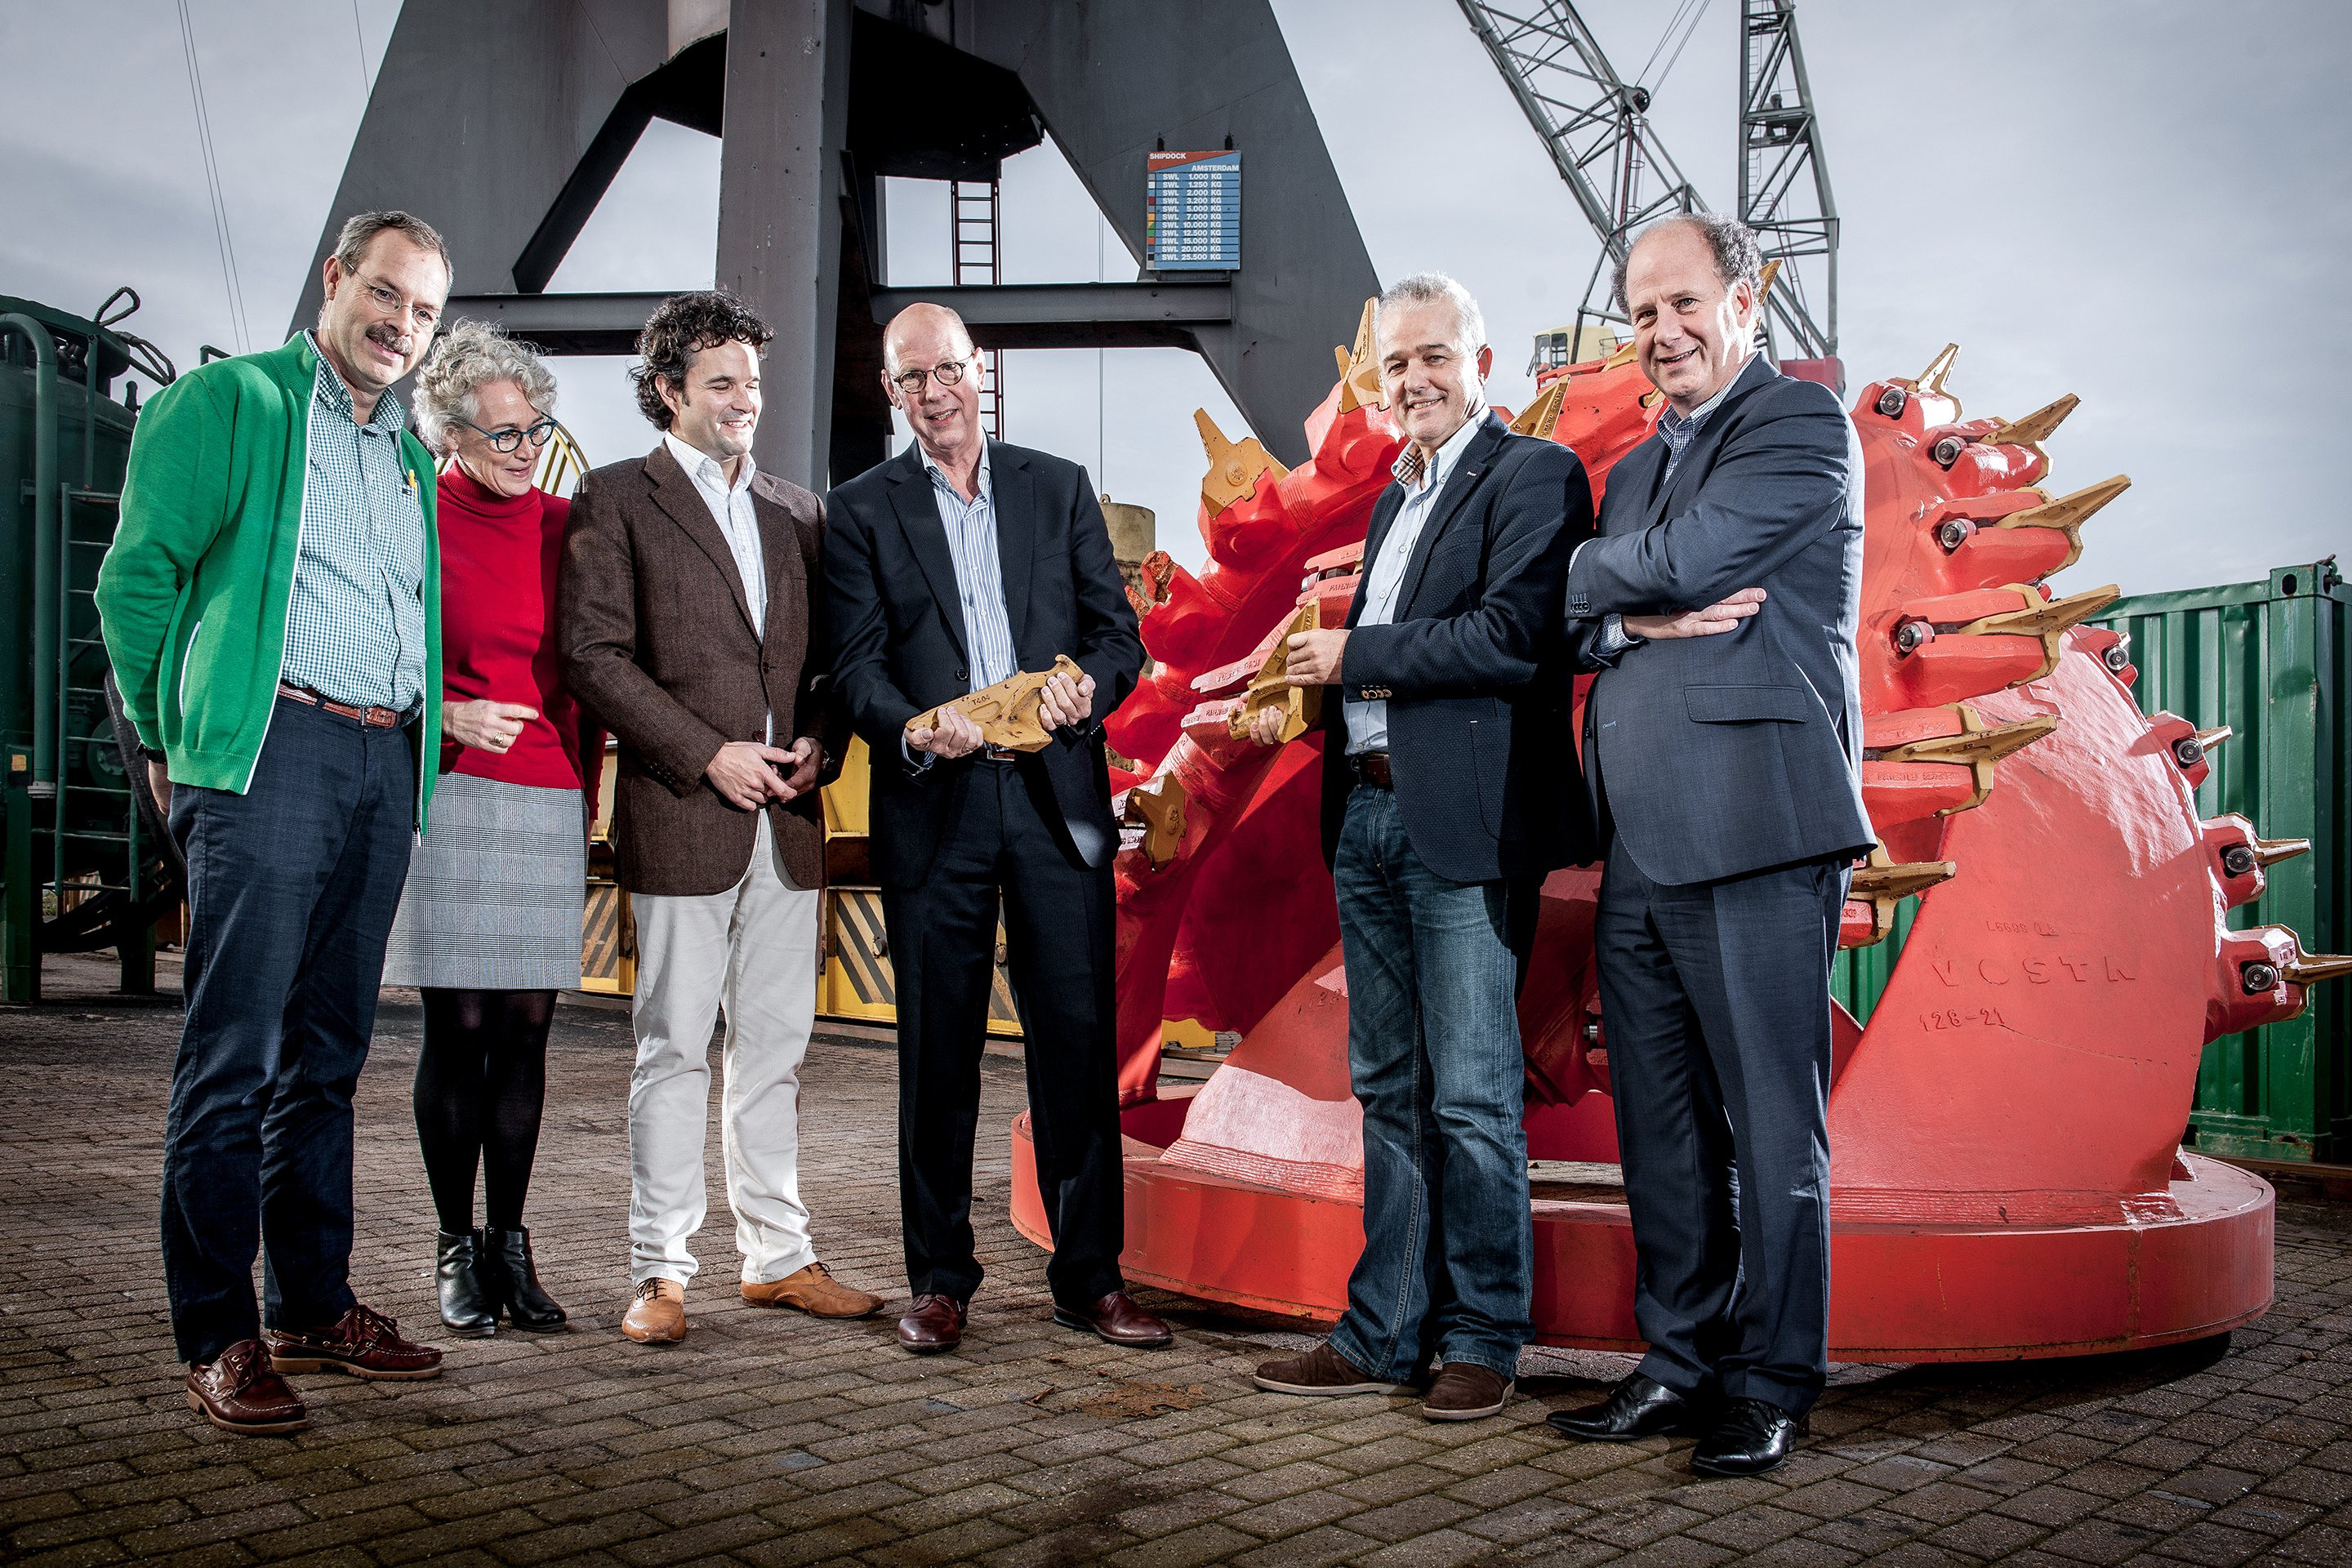 From left to right: Klaas Wijma, Monique de Klein, Georges Teheux, Fred Dekker, Arie Kamsteeg and Joost Rijnsdorp